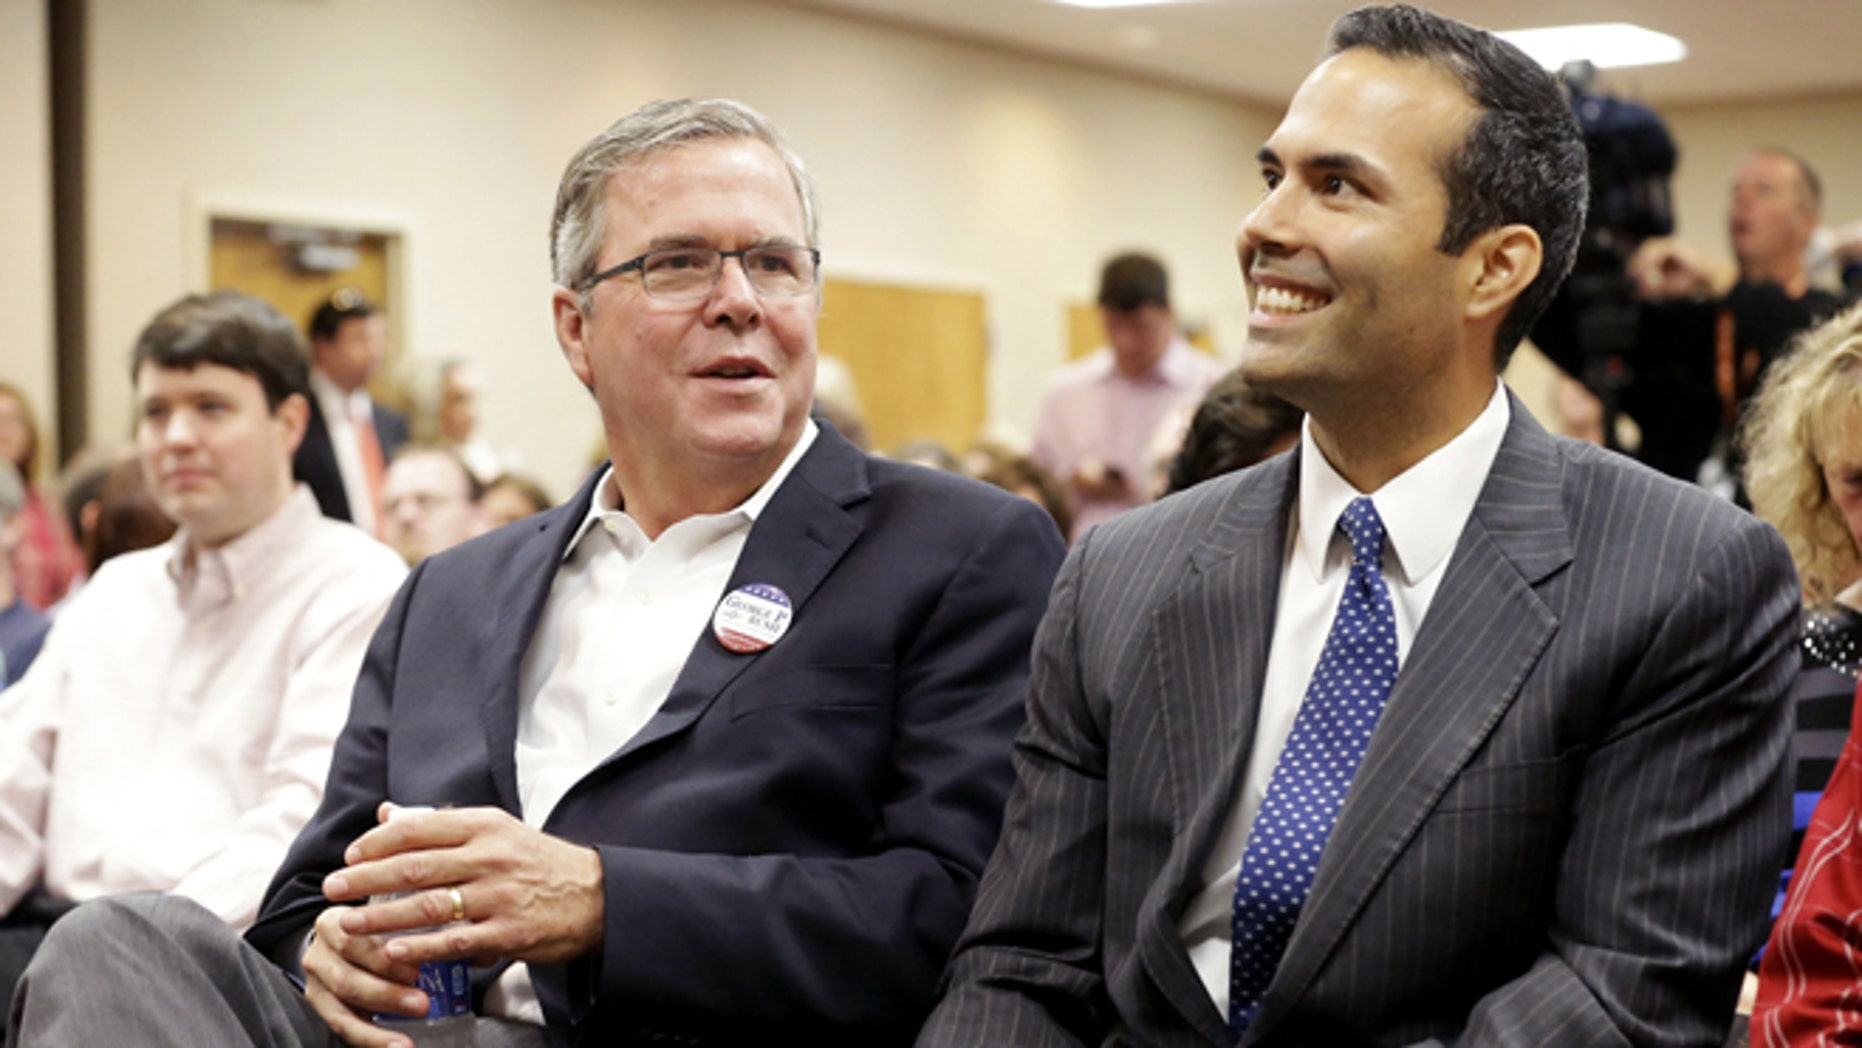 Former Florida Gov. Jeb Bush, left, sits with his son George P. Bush before speaking to supporters at Hardin-Simmons University, Tuesday, Oct. 14, 2014, in Abilene, Texas. Jeb Bush heads into West Texas to campaign for his son who is on the ballot this November as a candidate for state land commissioner. (AP Photo/LM Otero)